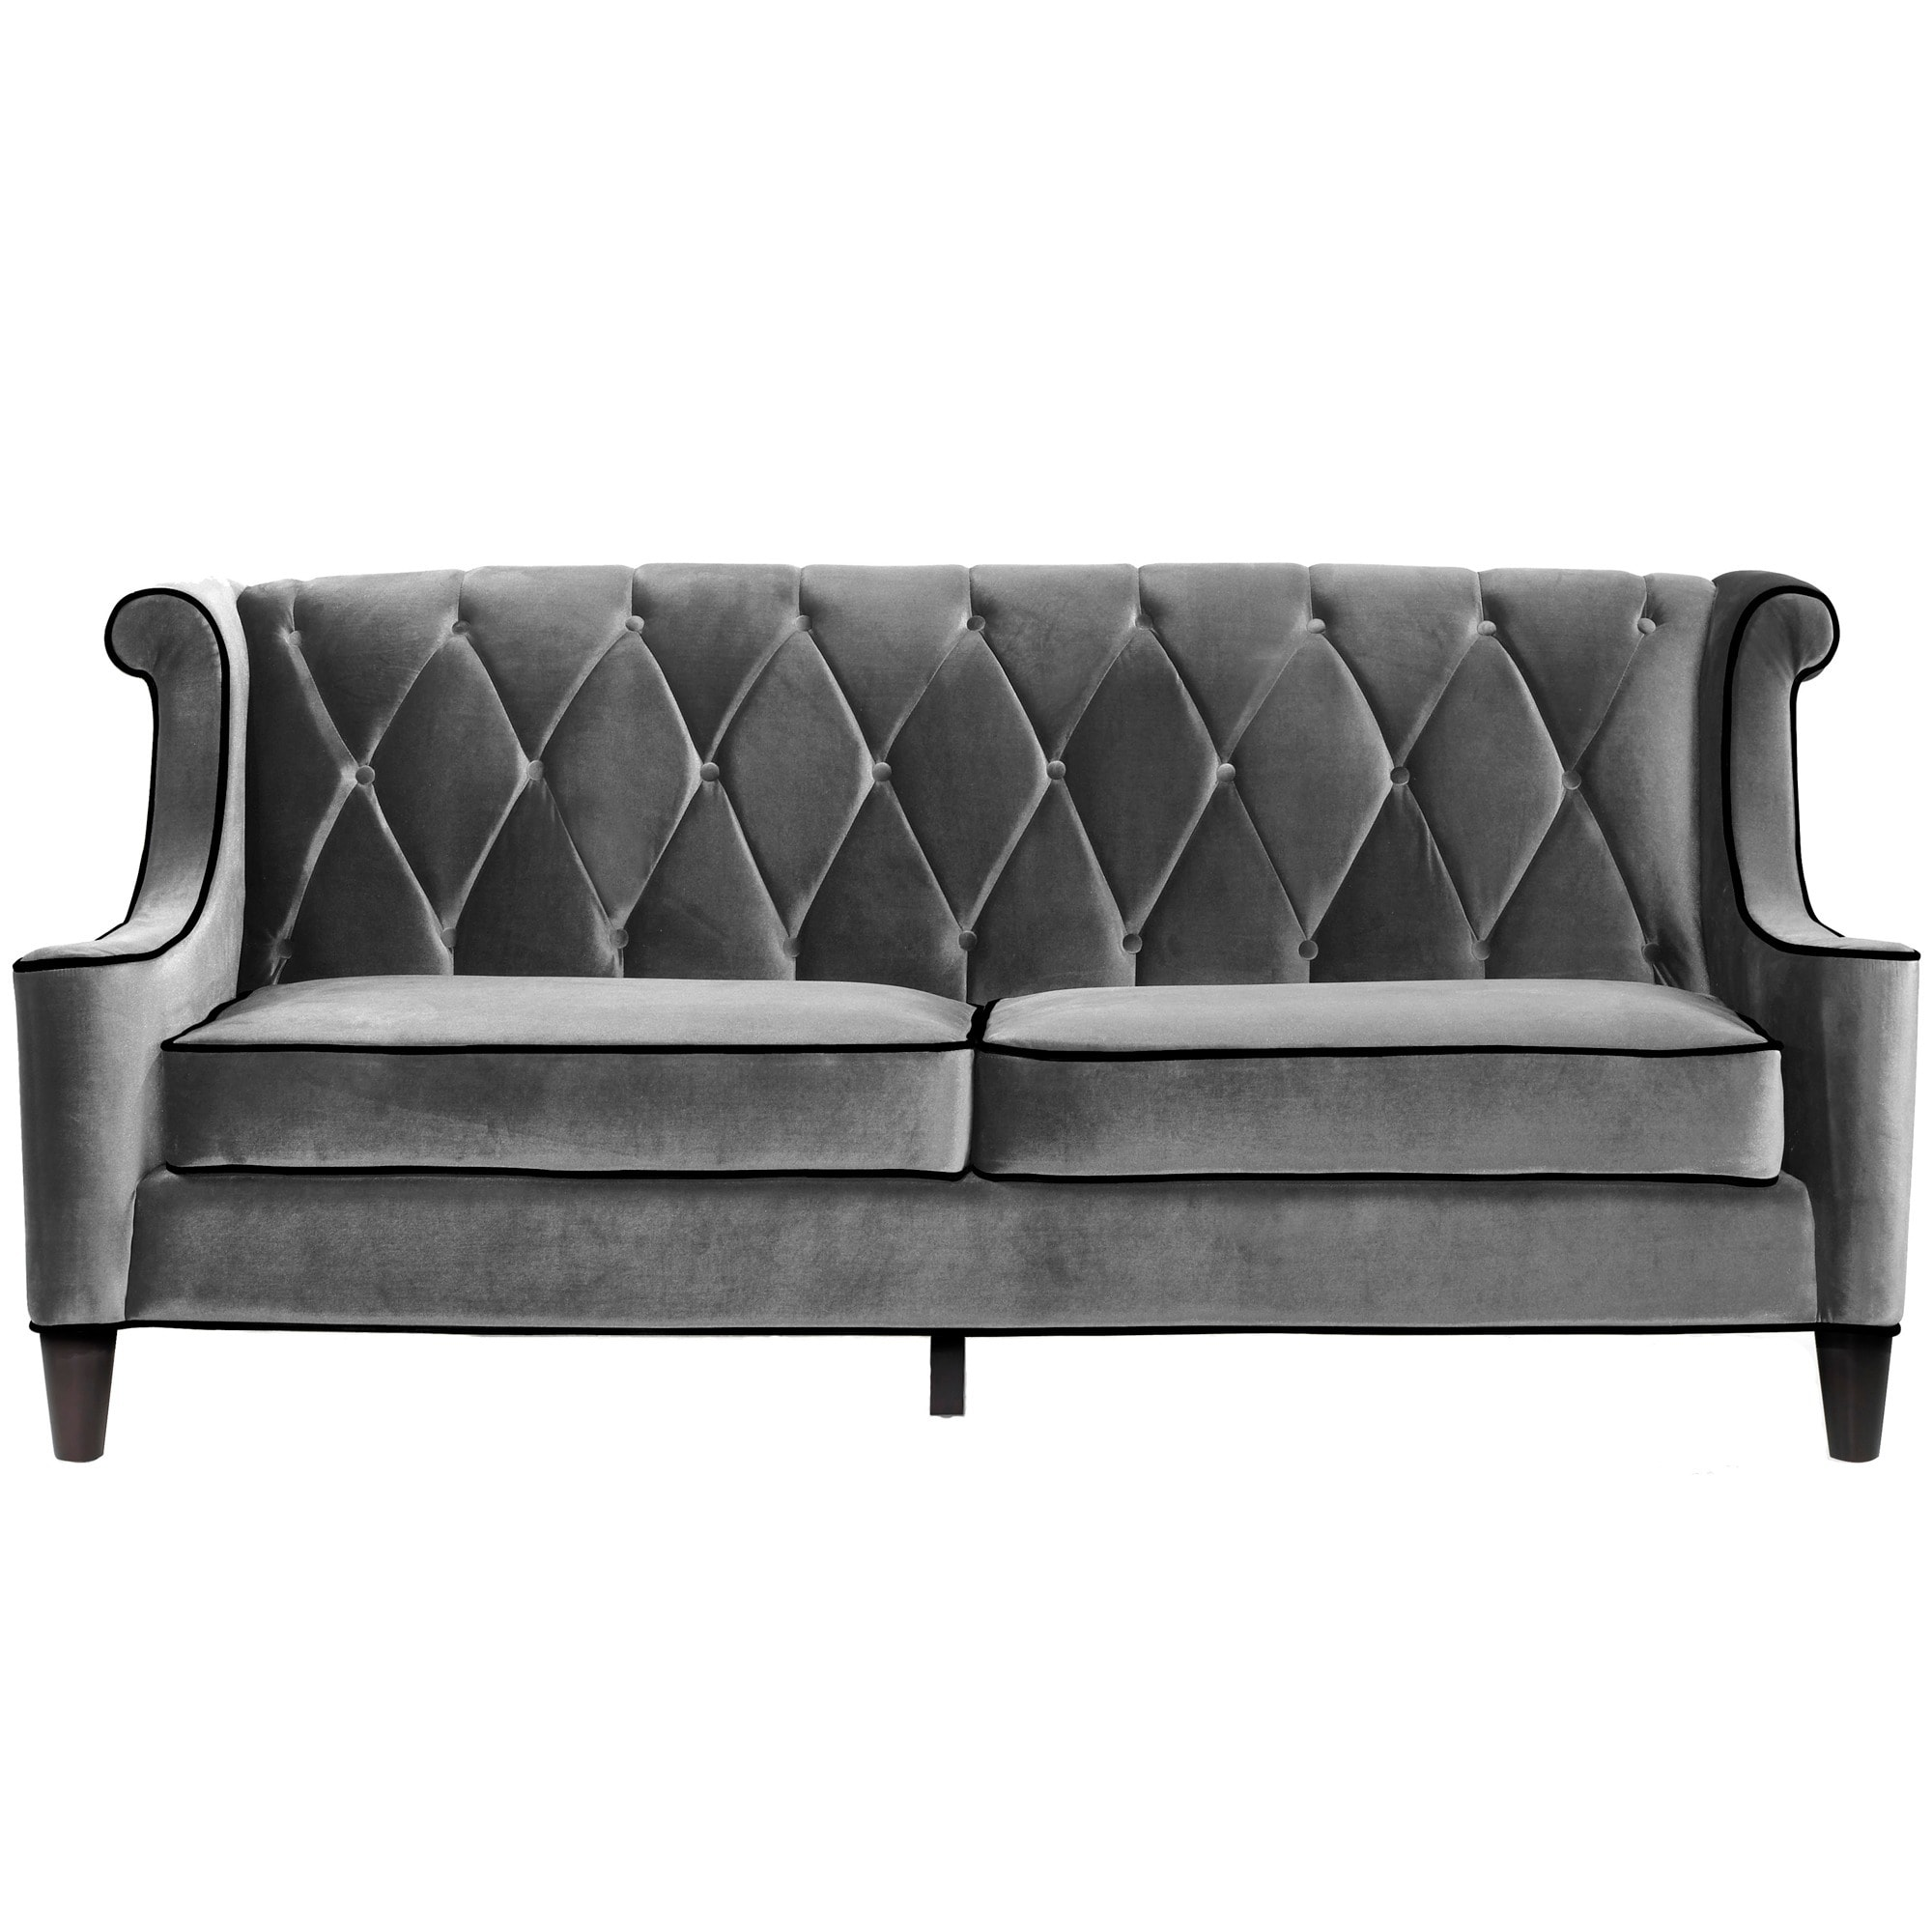 Charmant Shop Armen Living Barrister Modern Grey Velvet Sofa   Free Shipping Today    Overstock.com   6629457